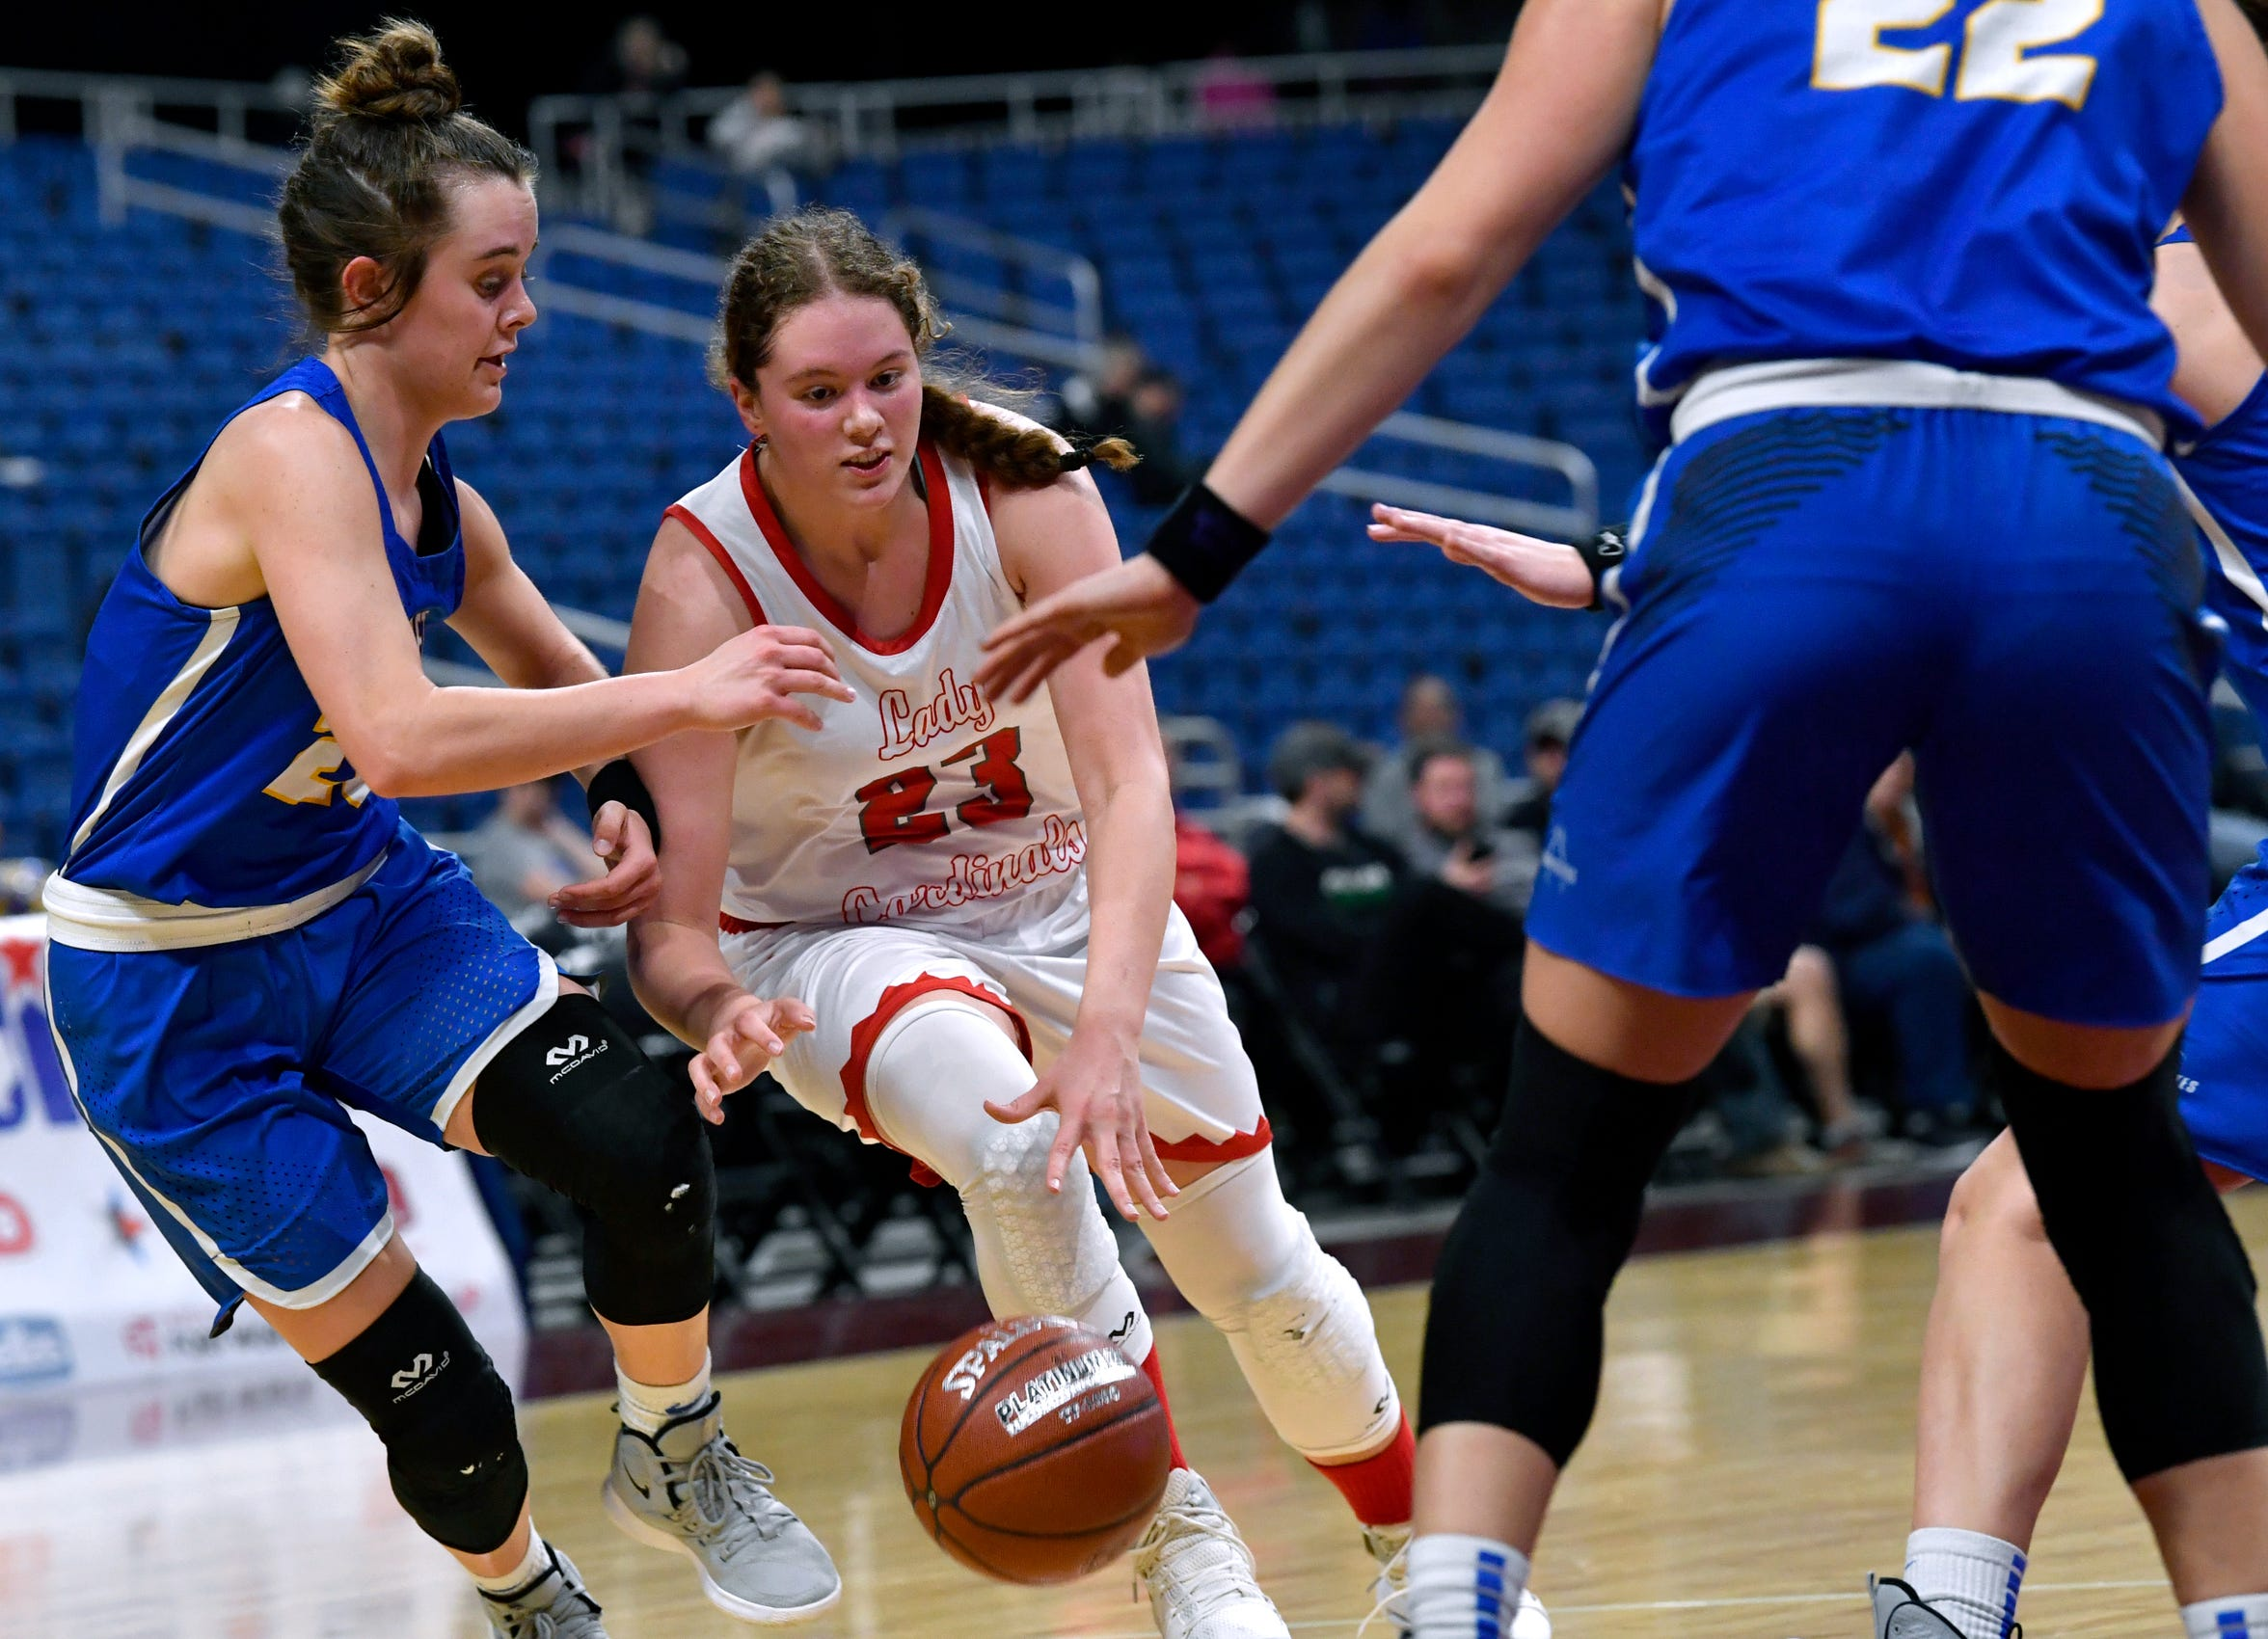 Hermleigh's Makia Gonzales drives to the basket past Nazareth forward Hallie Kleman during the Class 1A girls state basketball semifinal. The Lady Cardinals have made the state tournament in both years under former Wylie and Hardin-Simmons player Duane Hopper